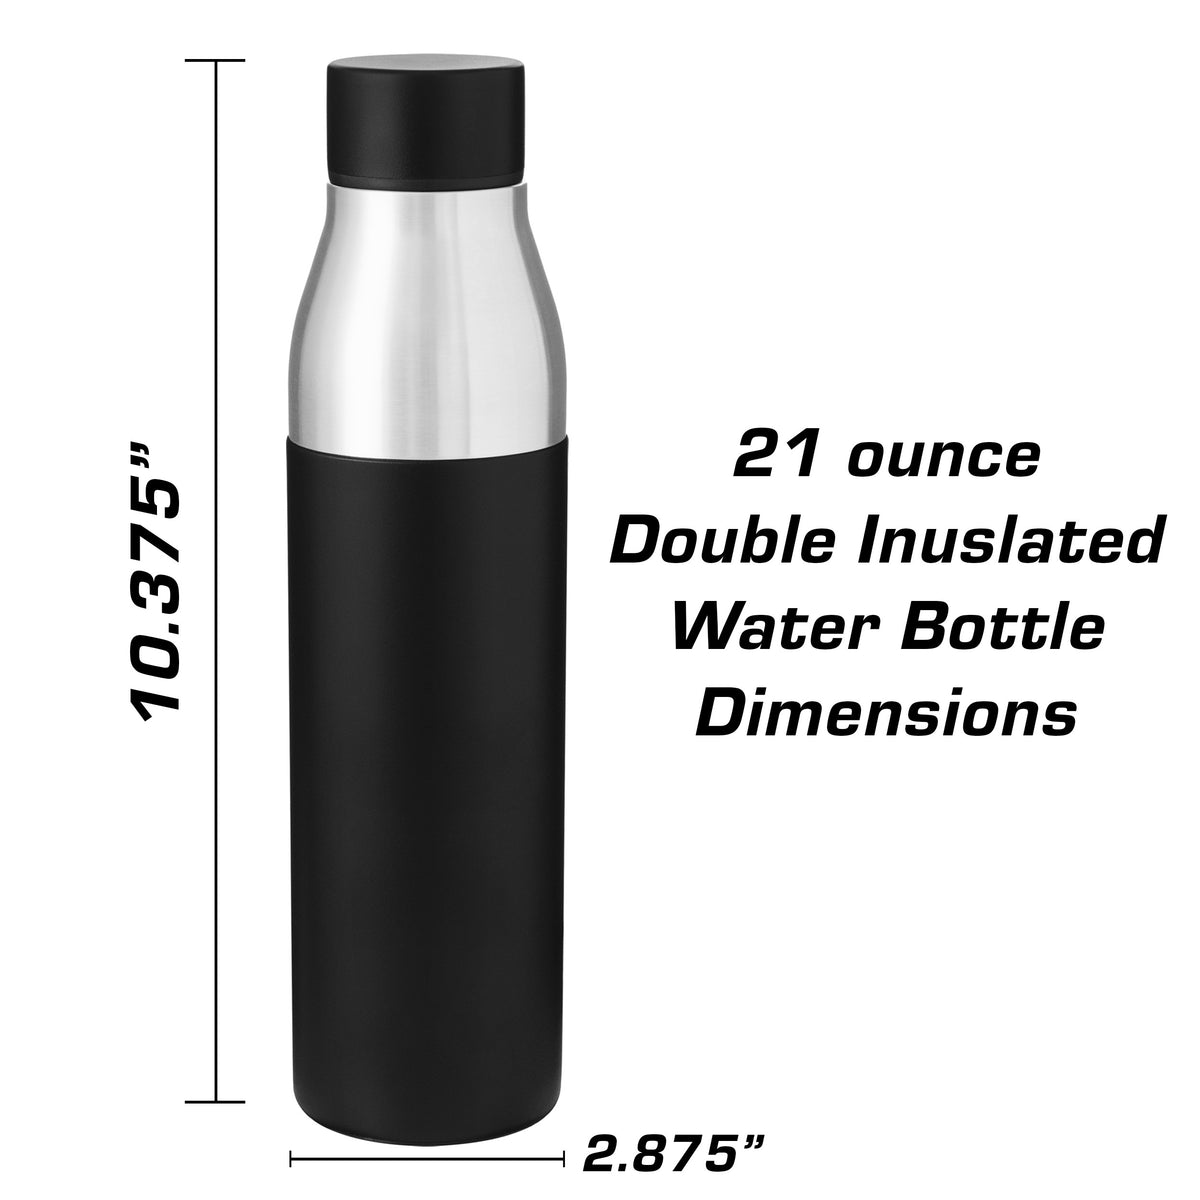 Jeep CJ-5 Insulated Stainless Steel Water Bottle - 21 oz